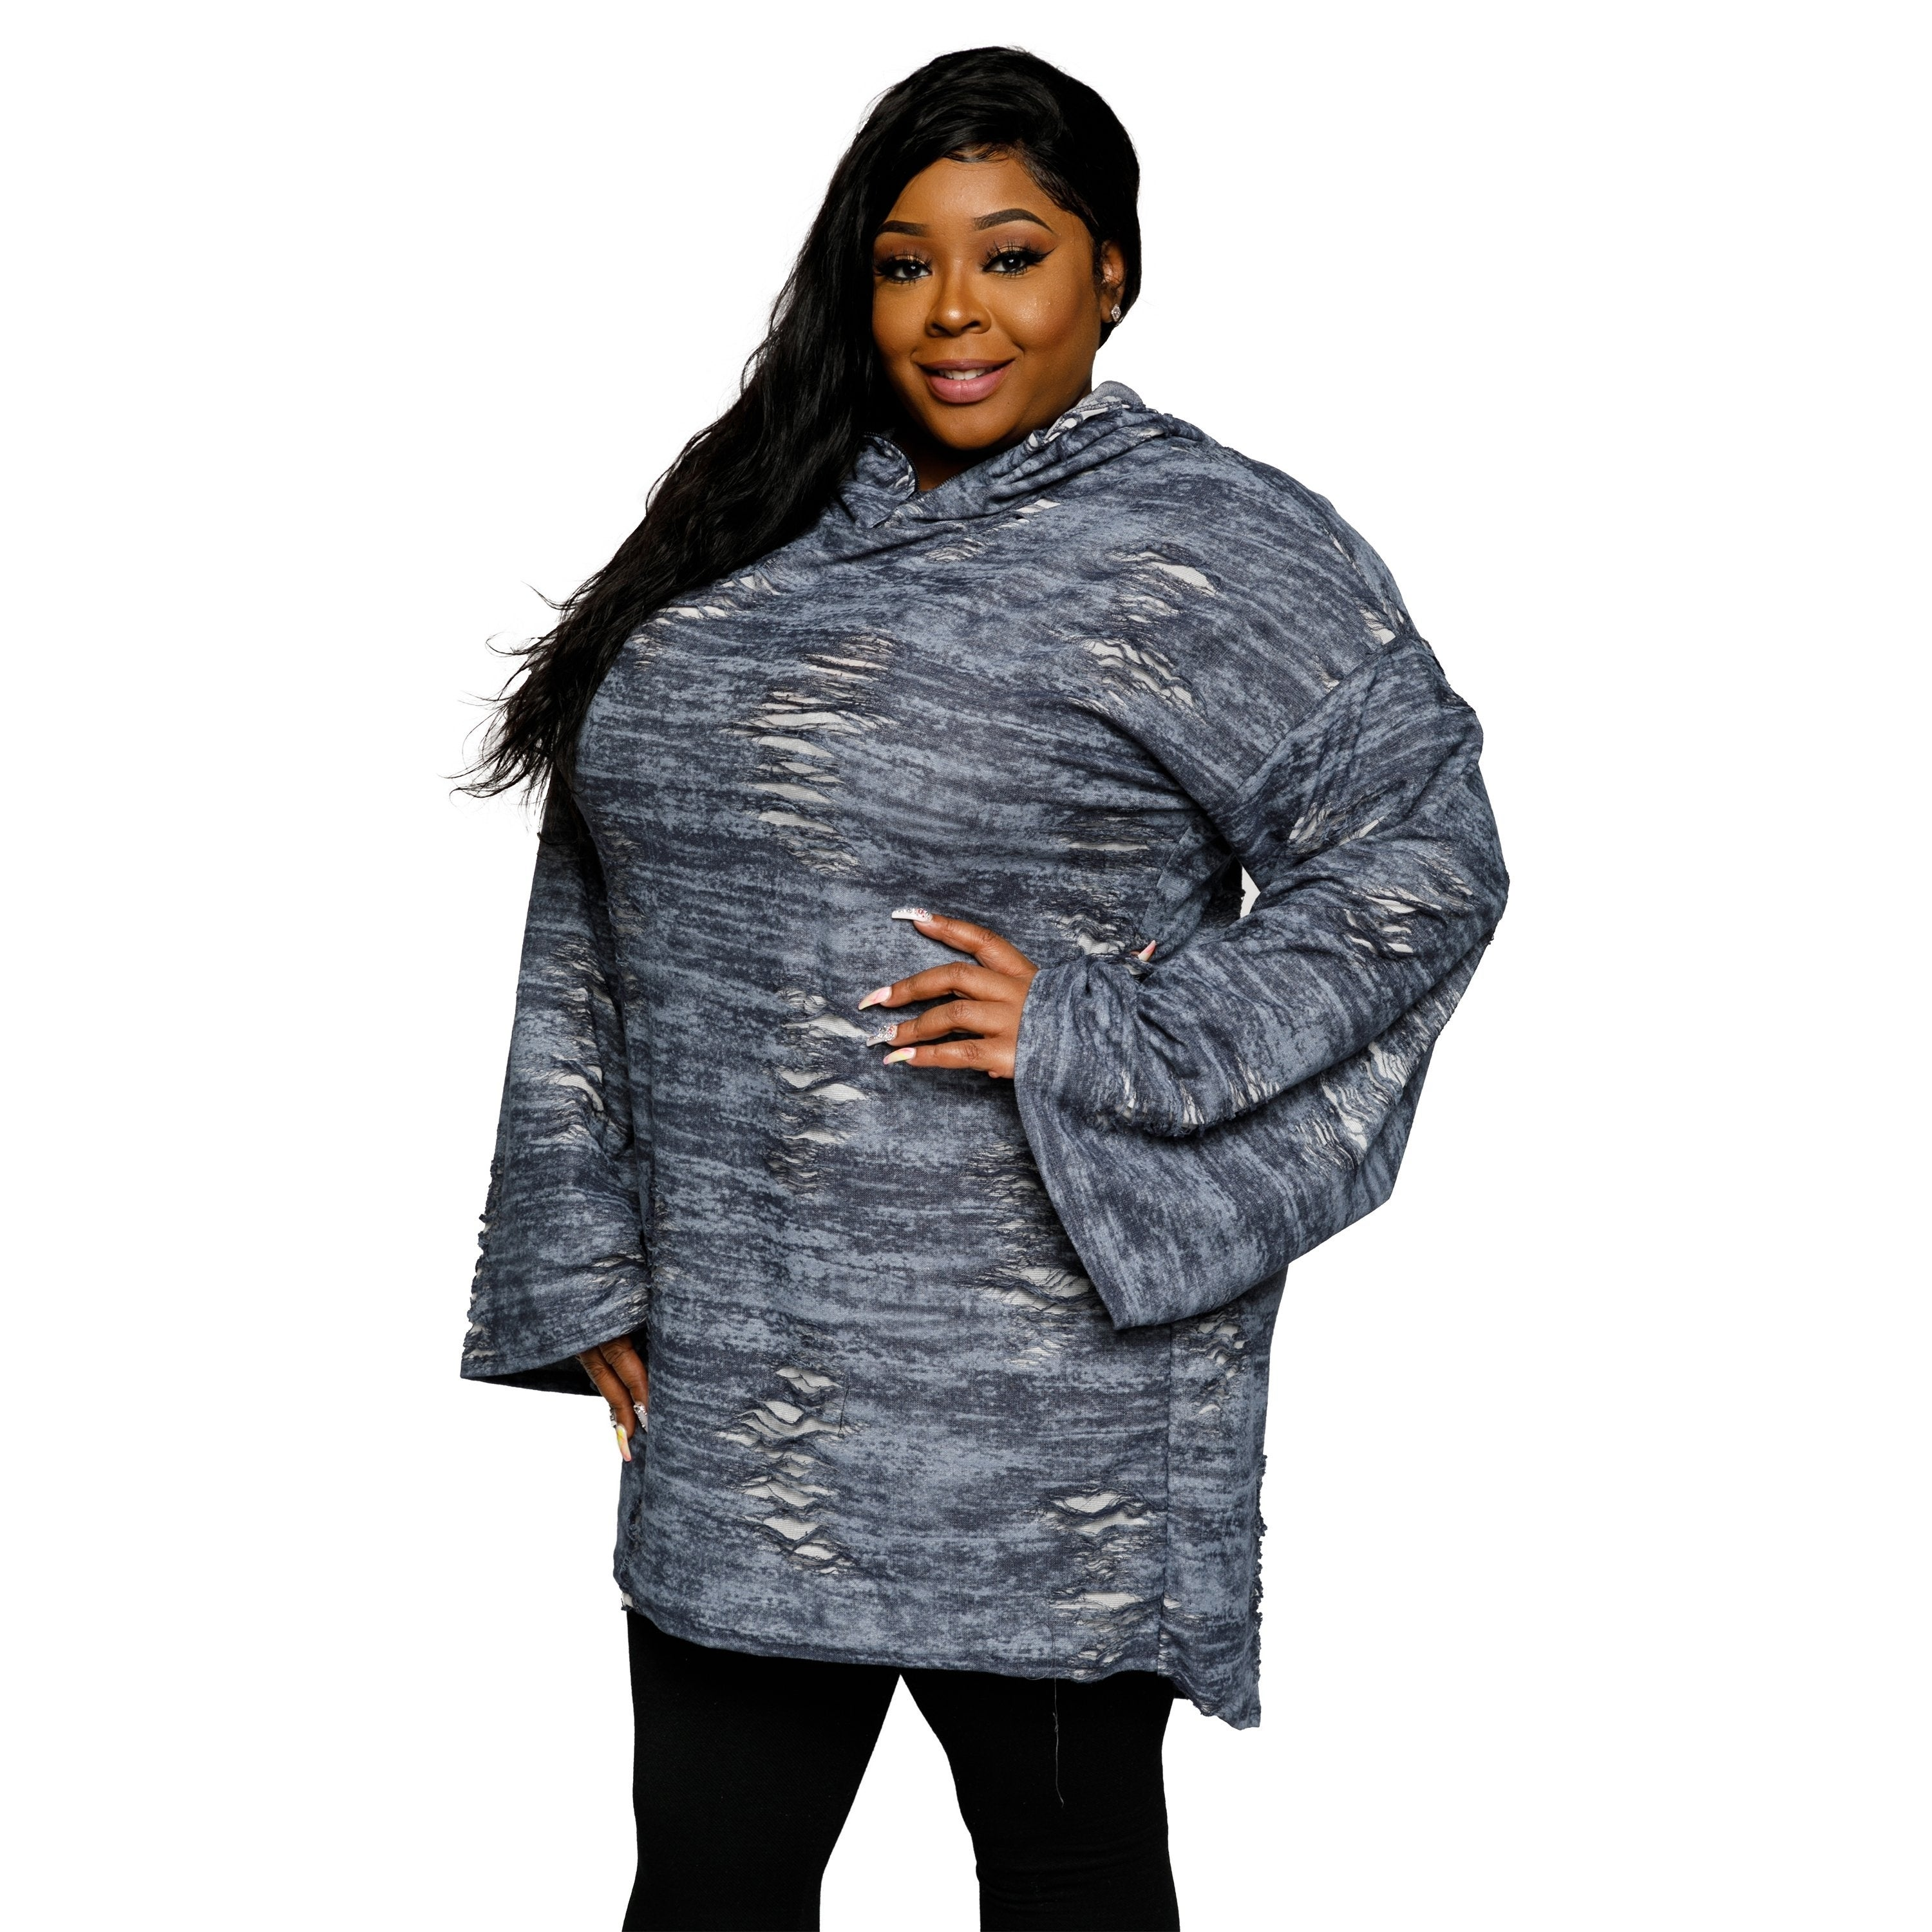 b2dc954abc9 Shop Xehar Womens Plus Size Distressed Oversized Hoodie Sweater Dress -  Free Shipping Today - Overstock - 18820673